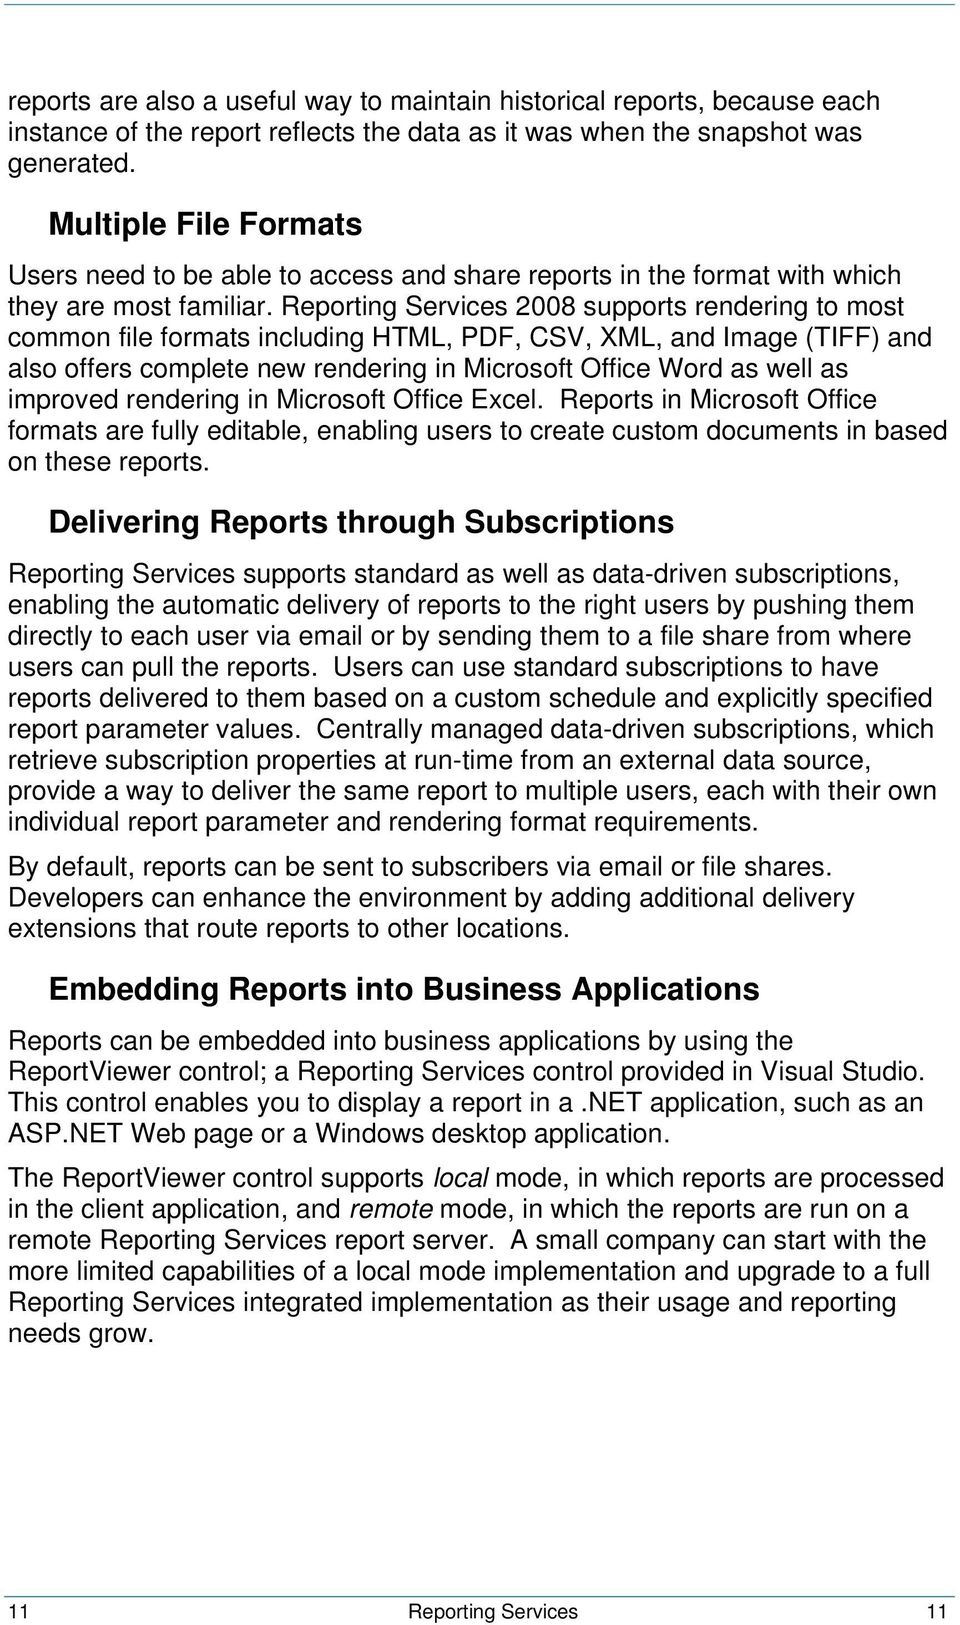 Reporting Services 2008 supports rendering to most common file formats including HTML, PDF, CSV, XML, and Image (TIFF) and also offers complete new rendering in Microsoft Office Word as well as